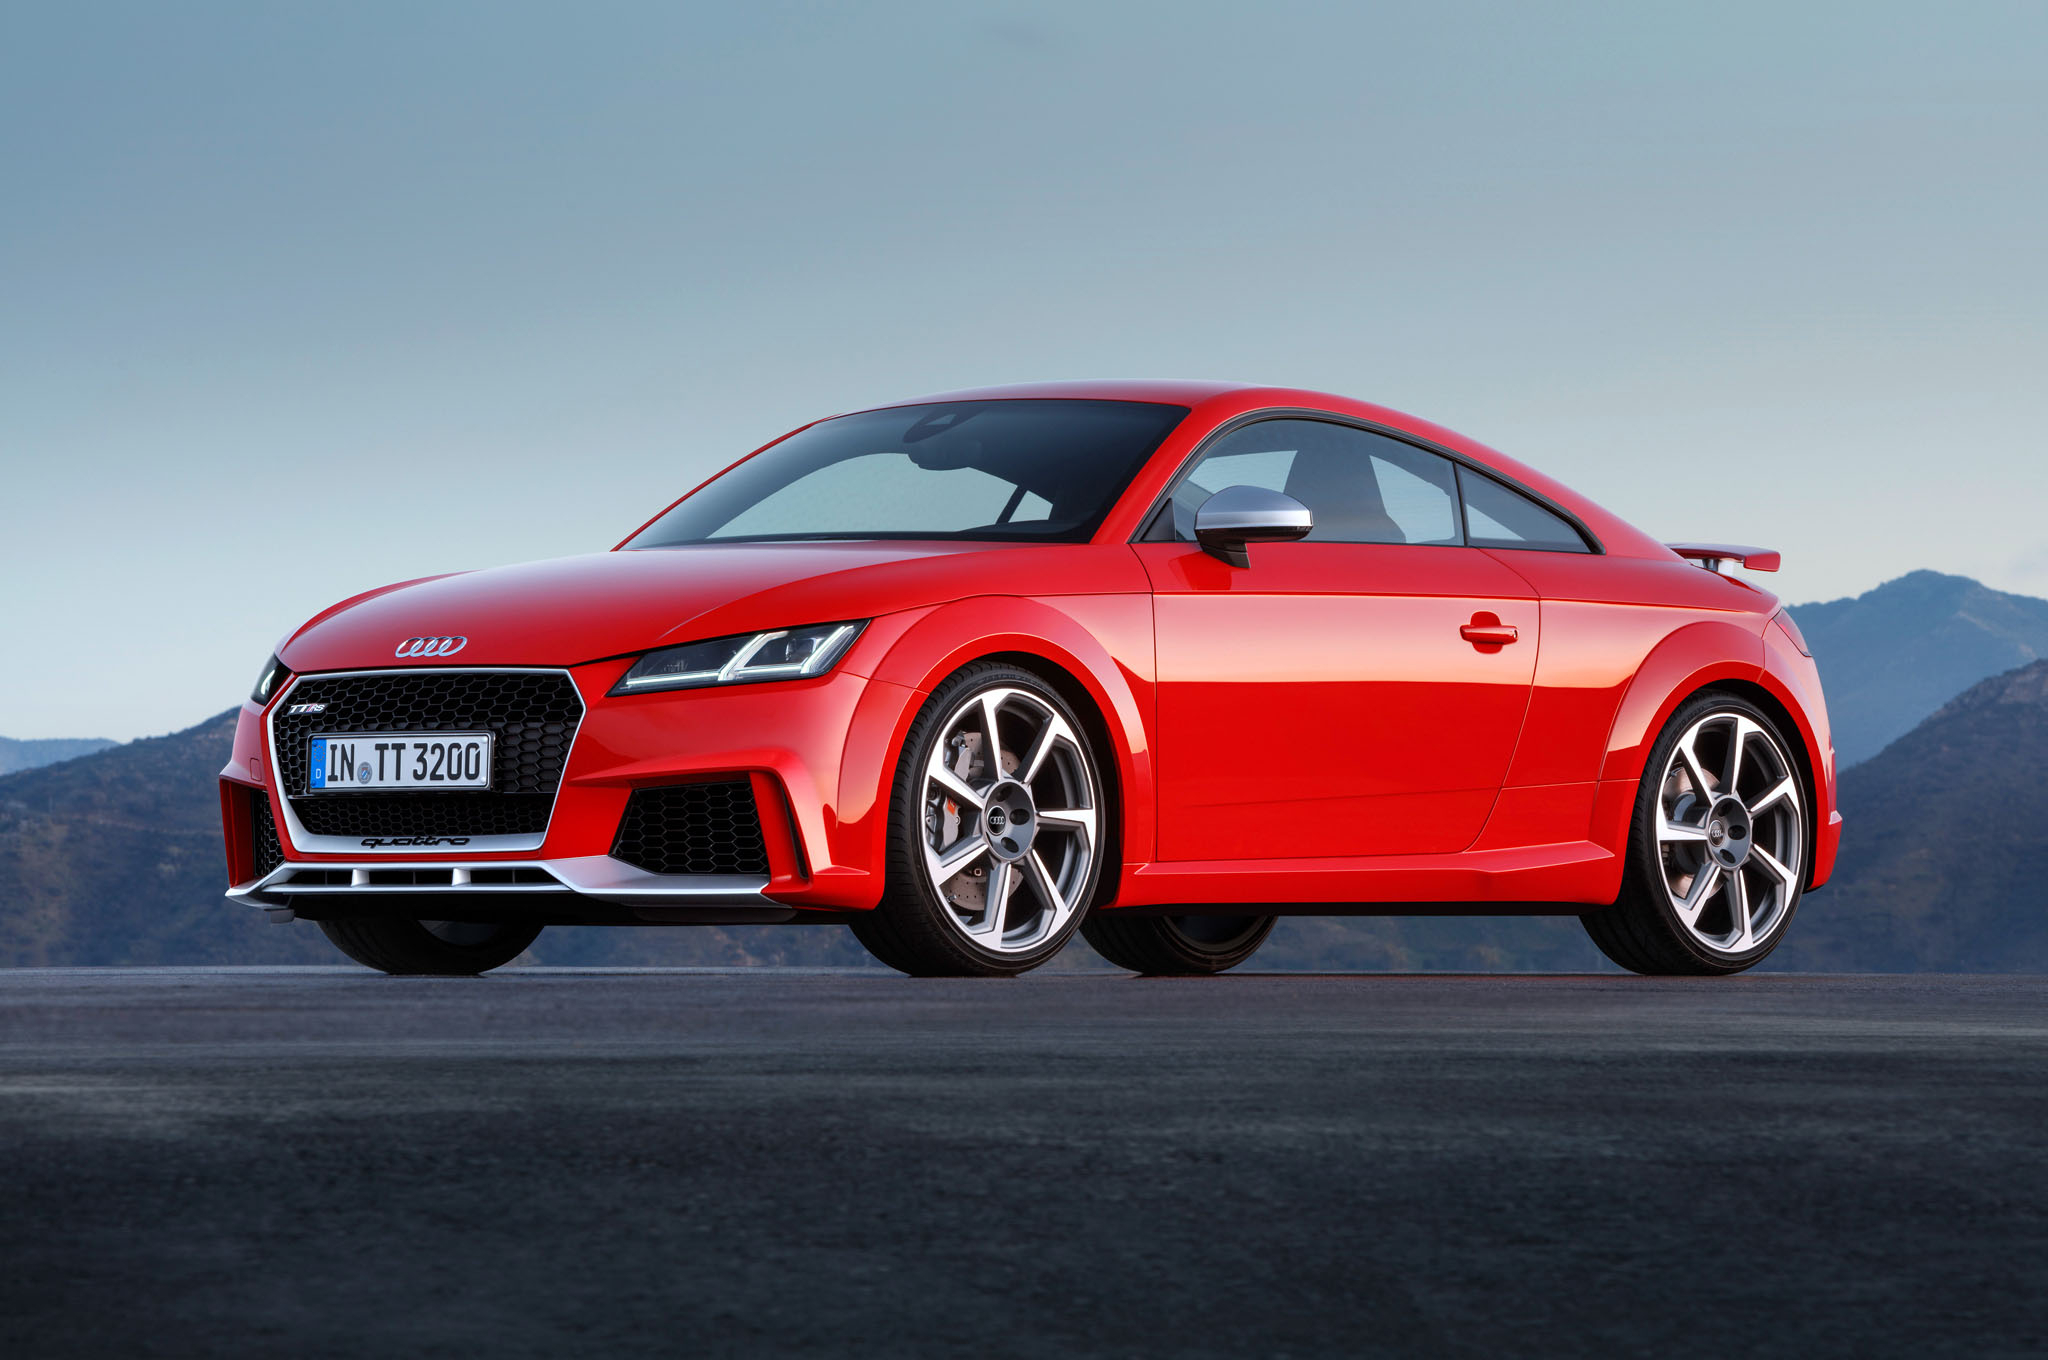 2017 Audi TT RS Coupe Background Wallpaper HD ...